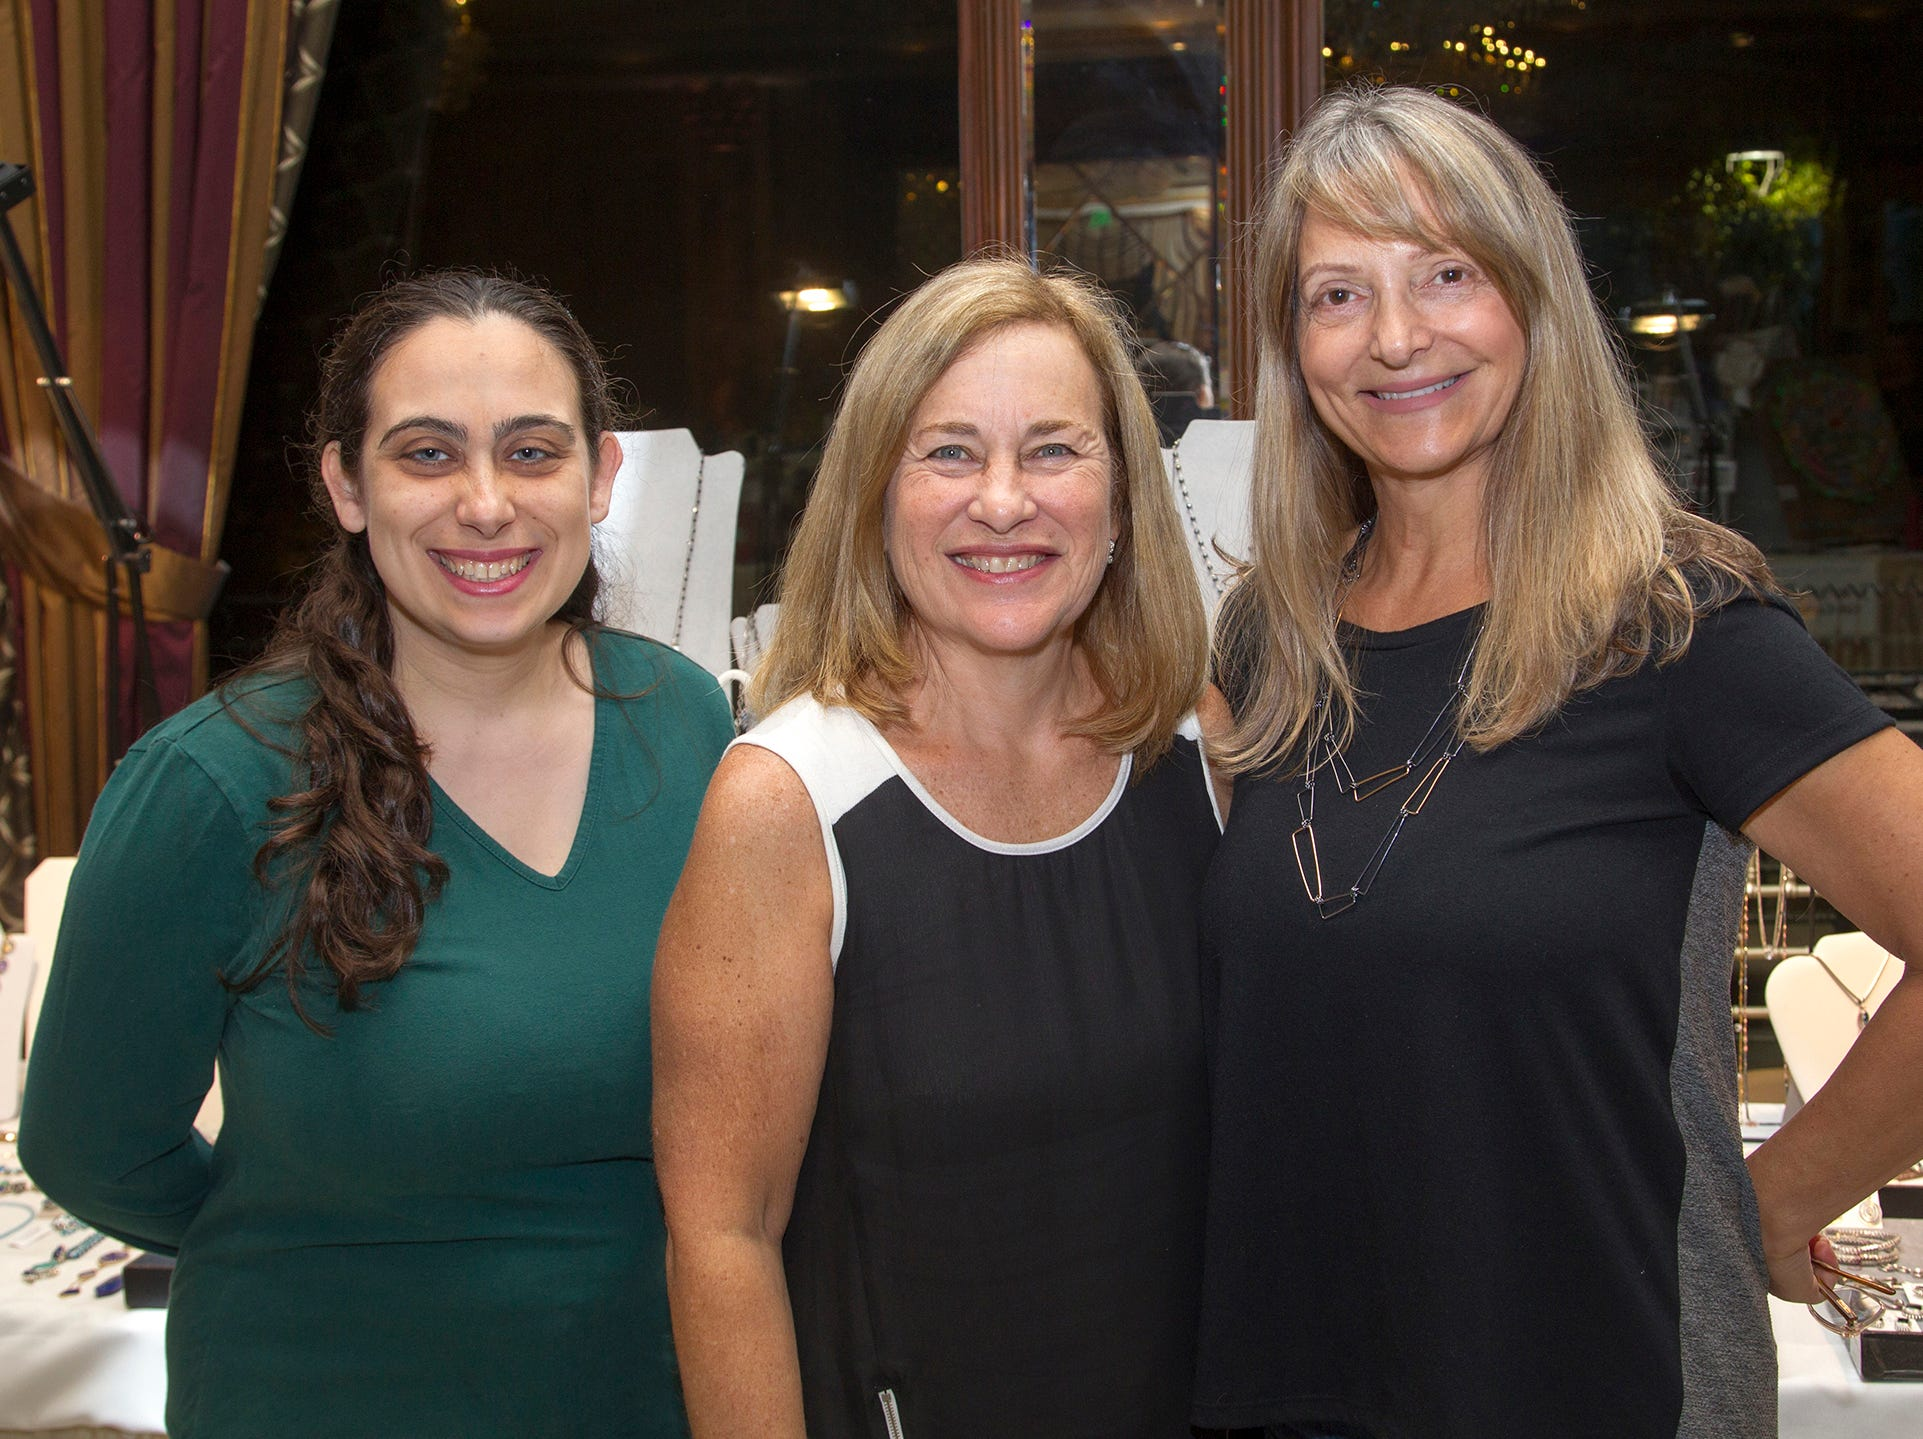 Caren Shapiro, Alexis Diaz, Noralyn Carroll of Earthly Treasures. Saddle River Day School sponsors Ladies Night Out at Seasons in Washington Twp.  11/01/2018